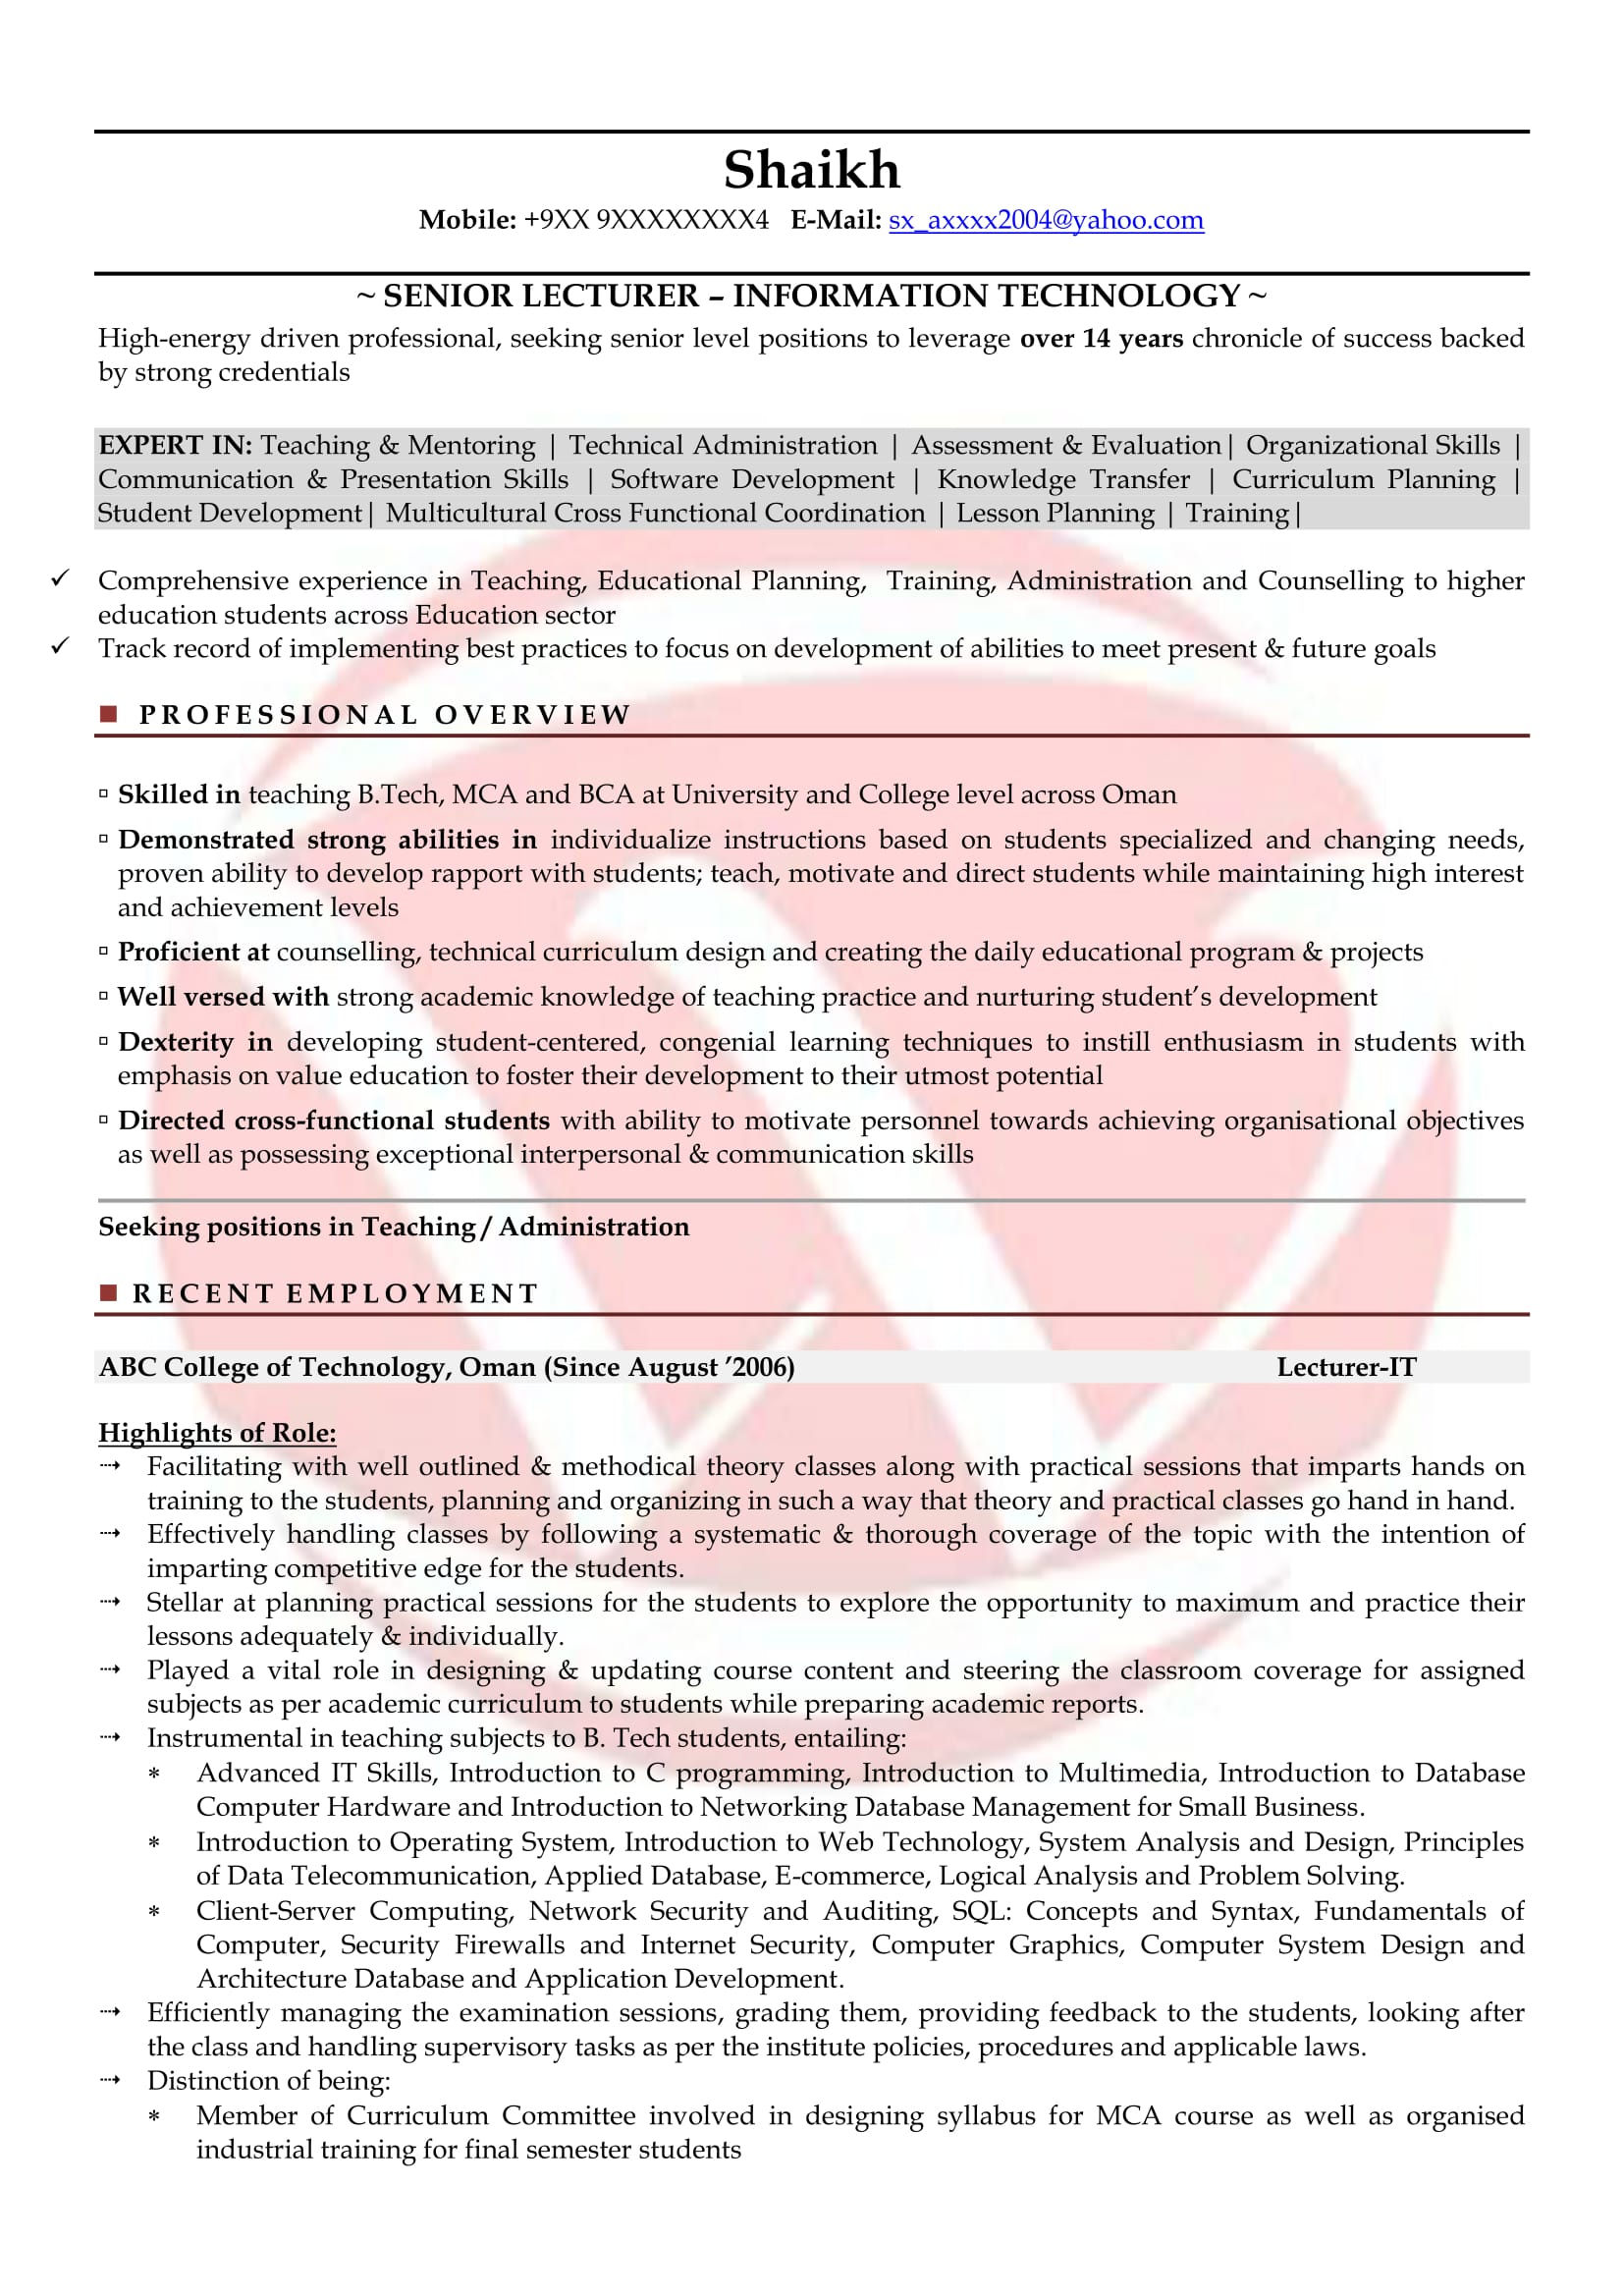 Resume Samples For Lecturers Lecturer Sample Resumes Download Resume Format Templates